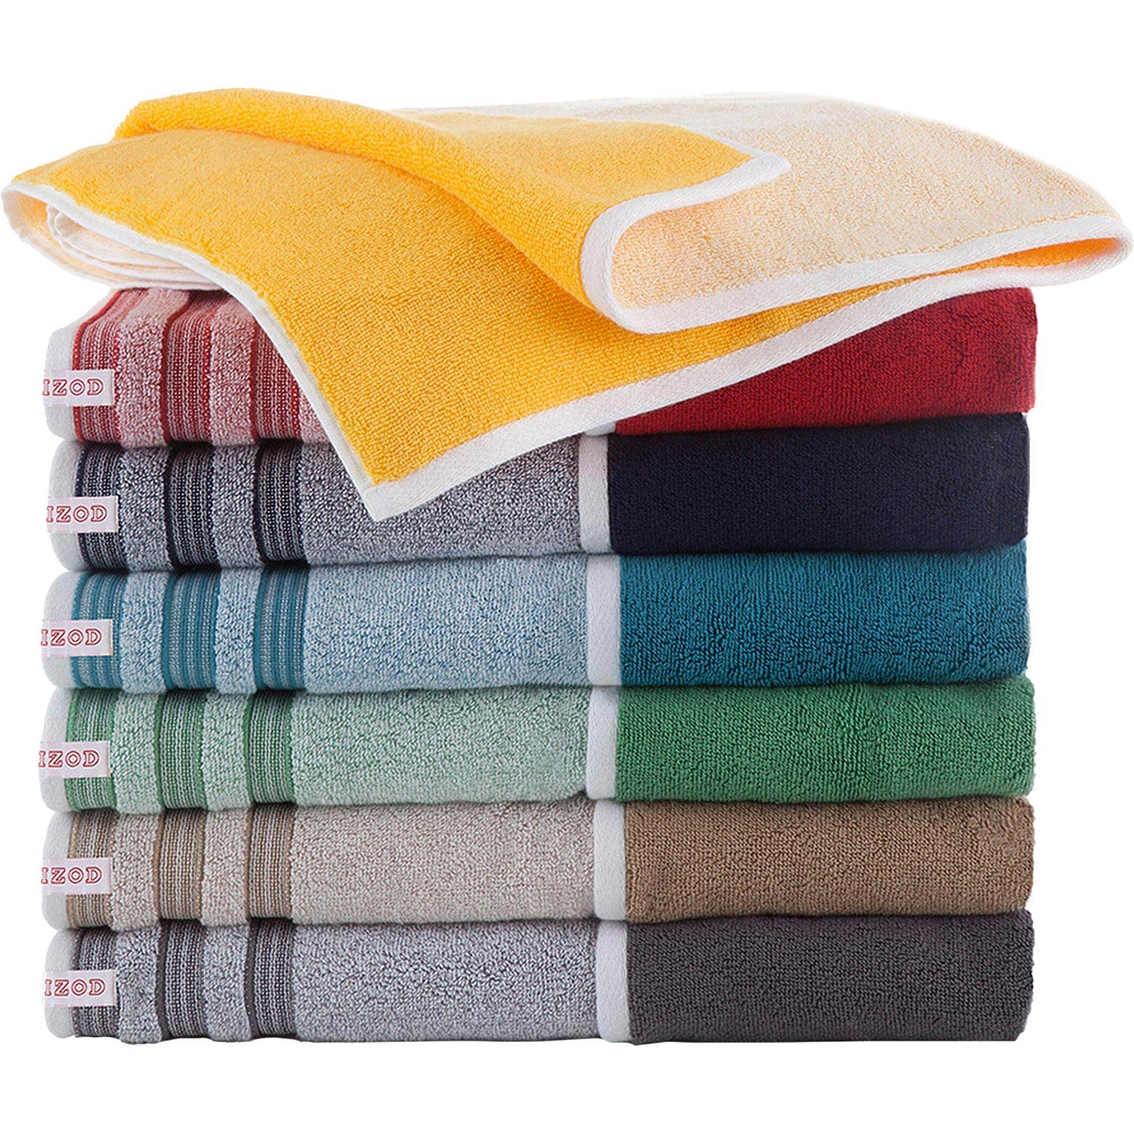 Lacoste Towels Clearance: Izod Oxford Bath Towel